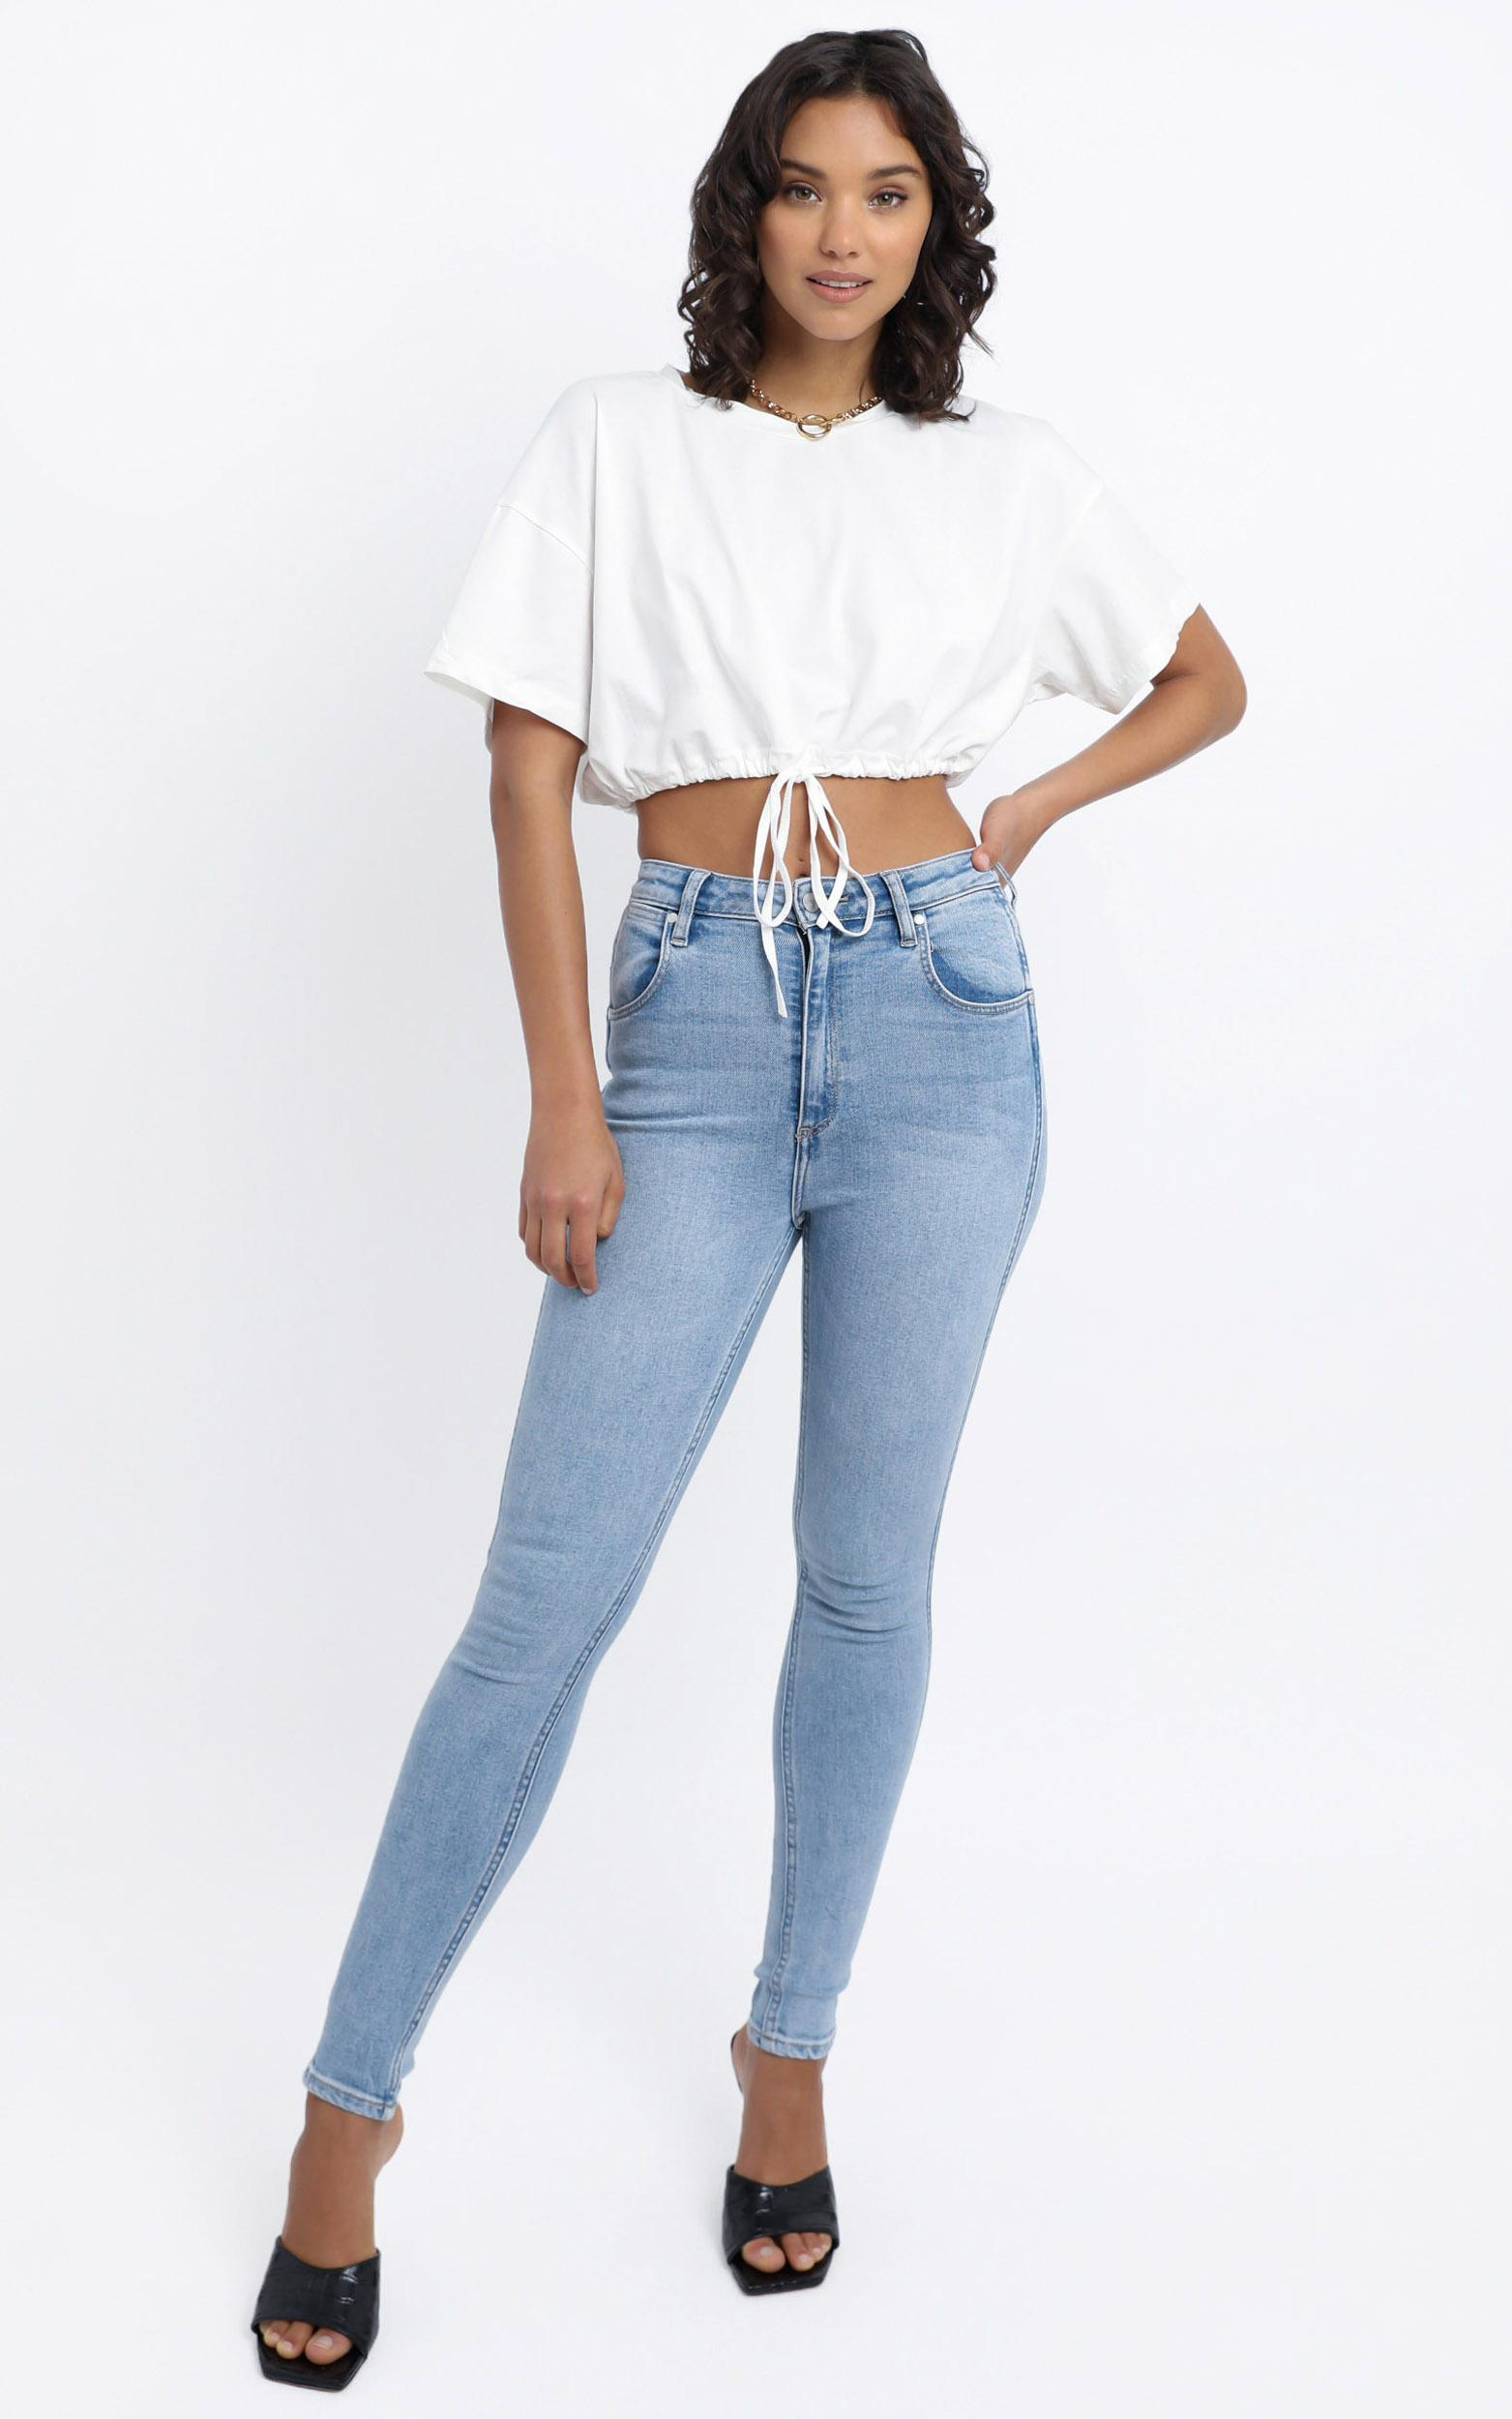 Partridge Top in White - 12 (L), White, hi-res image number null